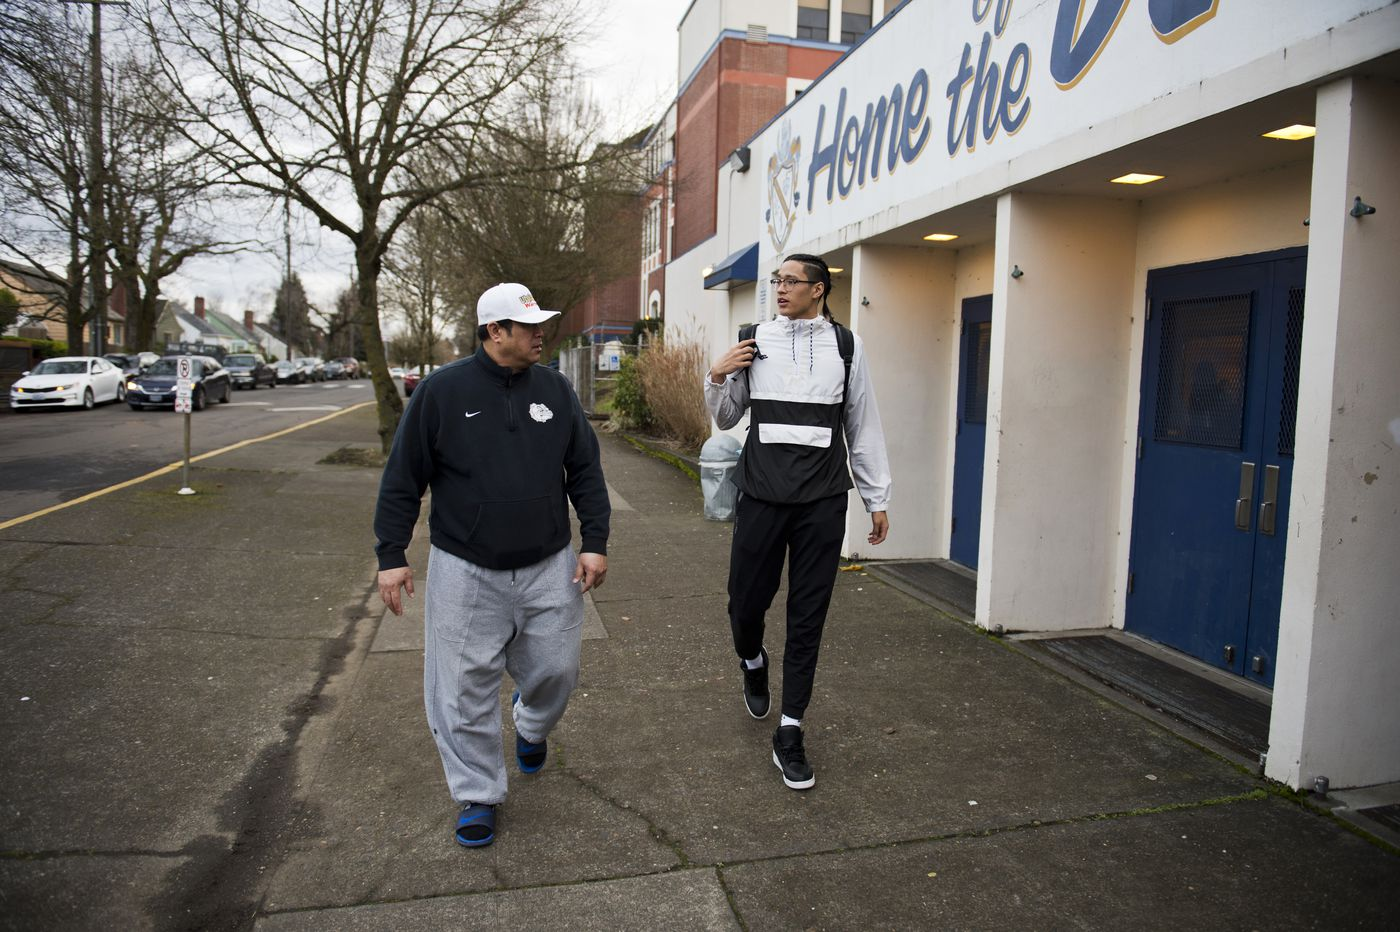 Roland Hepa, left, picks up his son, Kamaka, from basketball practice on Feb. 15, 2018, in Portland, Oregon. (Marc Lester / ADN)